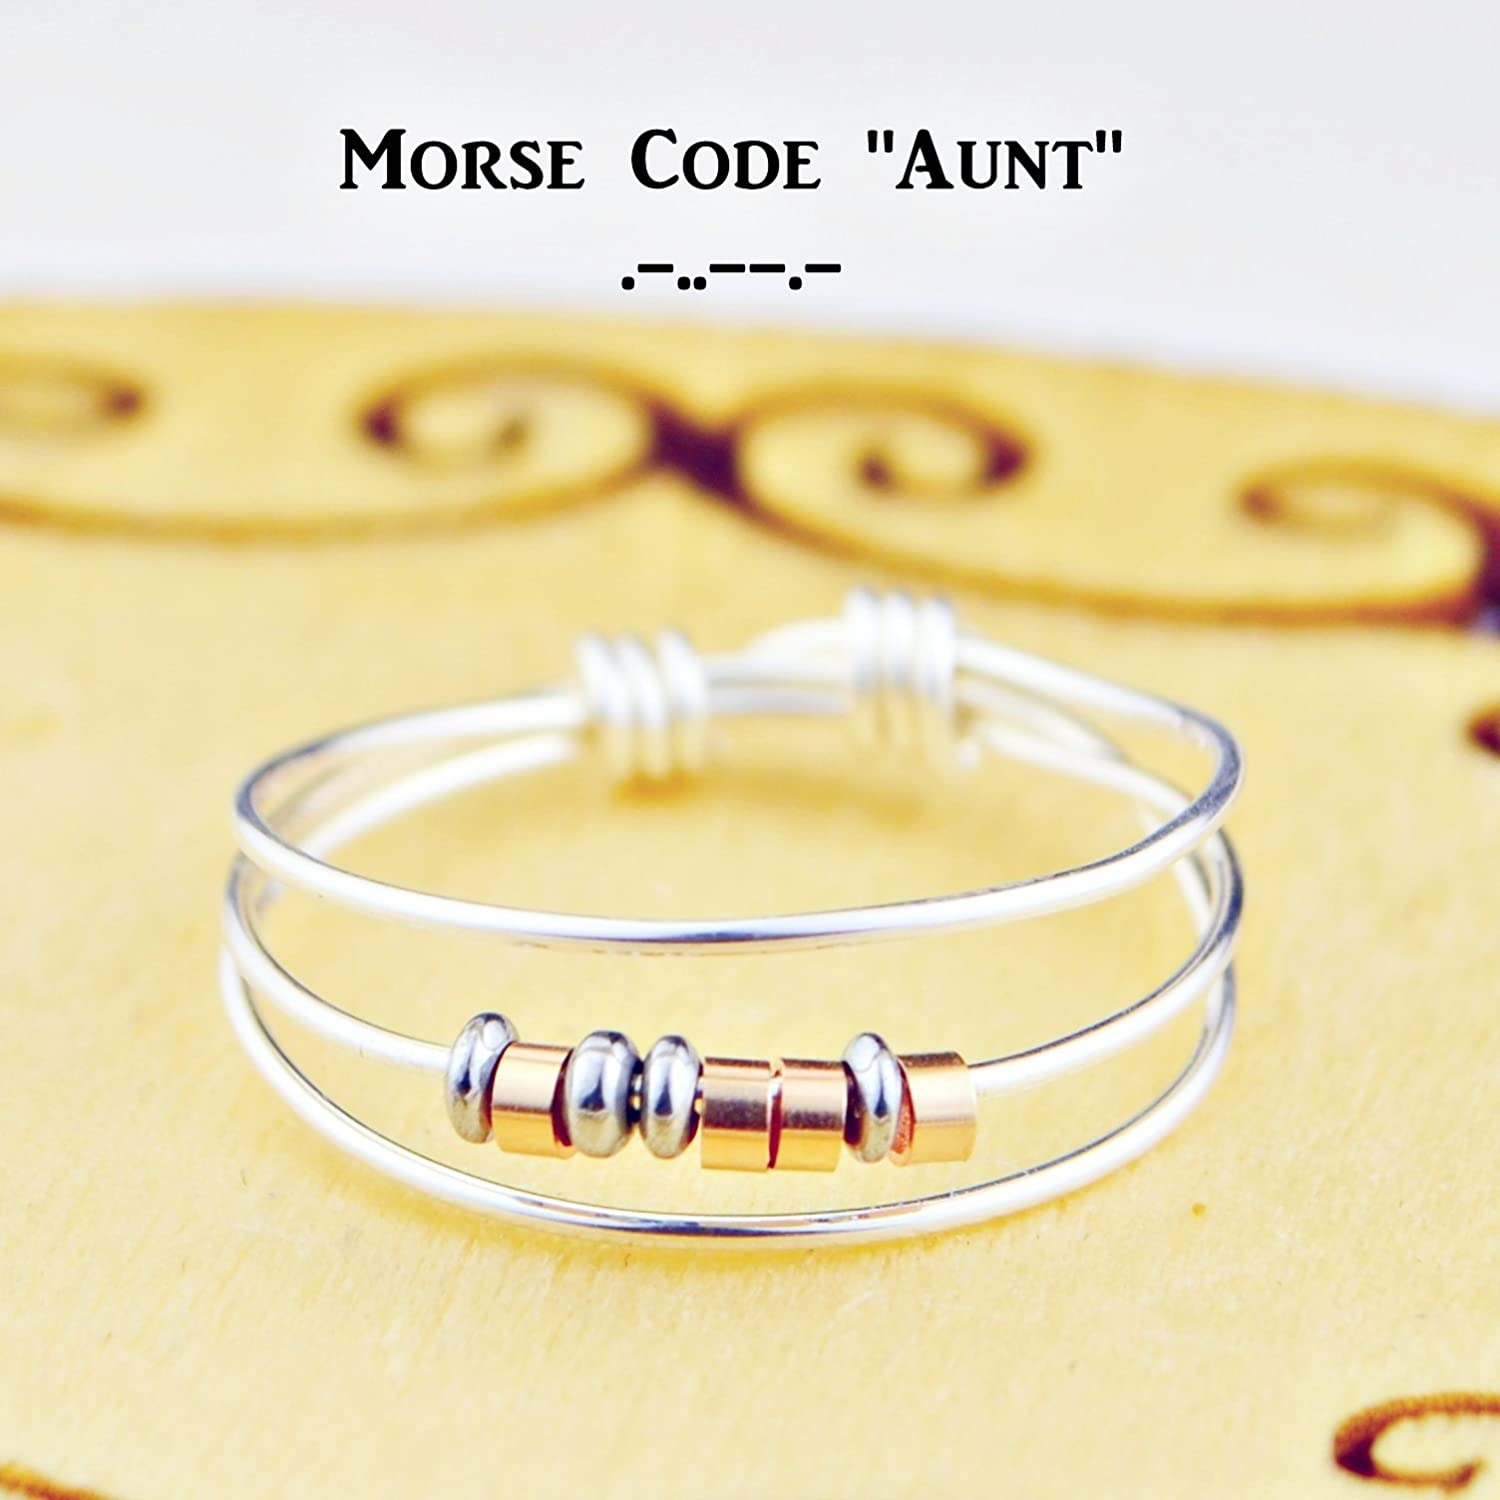 7 9,10,11,12,13,14 Rose 5 6 Morse Code Aunt Ring- Your Choice of Color Beads and Silver 8 or Yellow Gold Filled Wire- Any Size-4